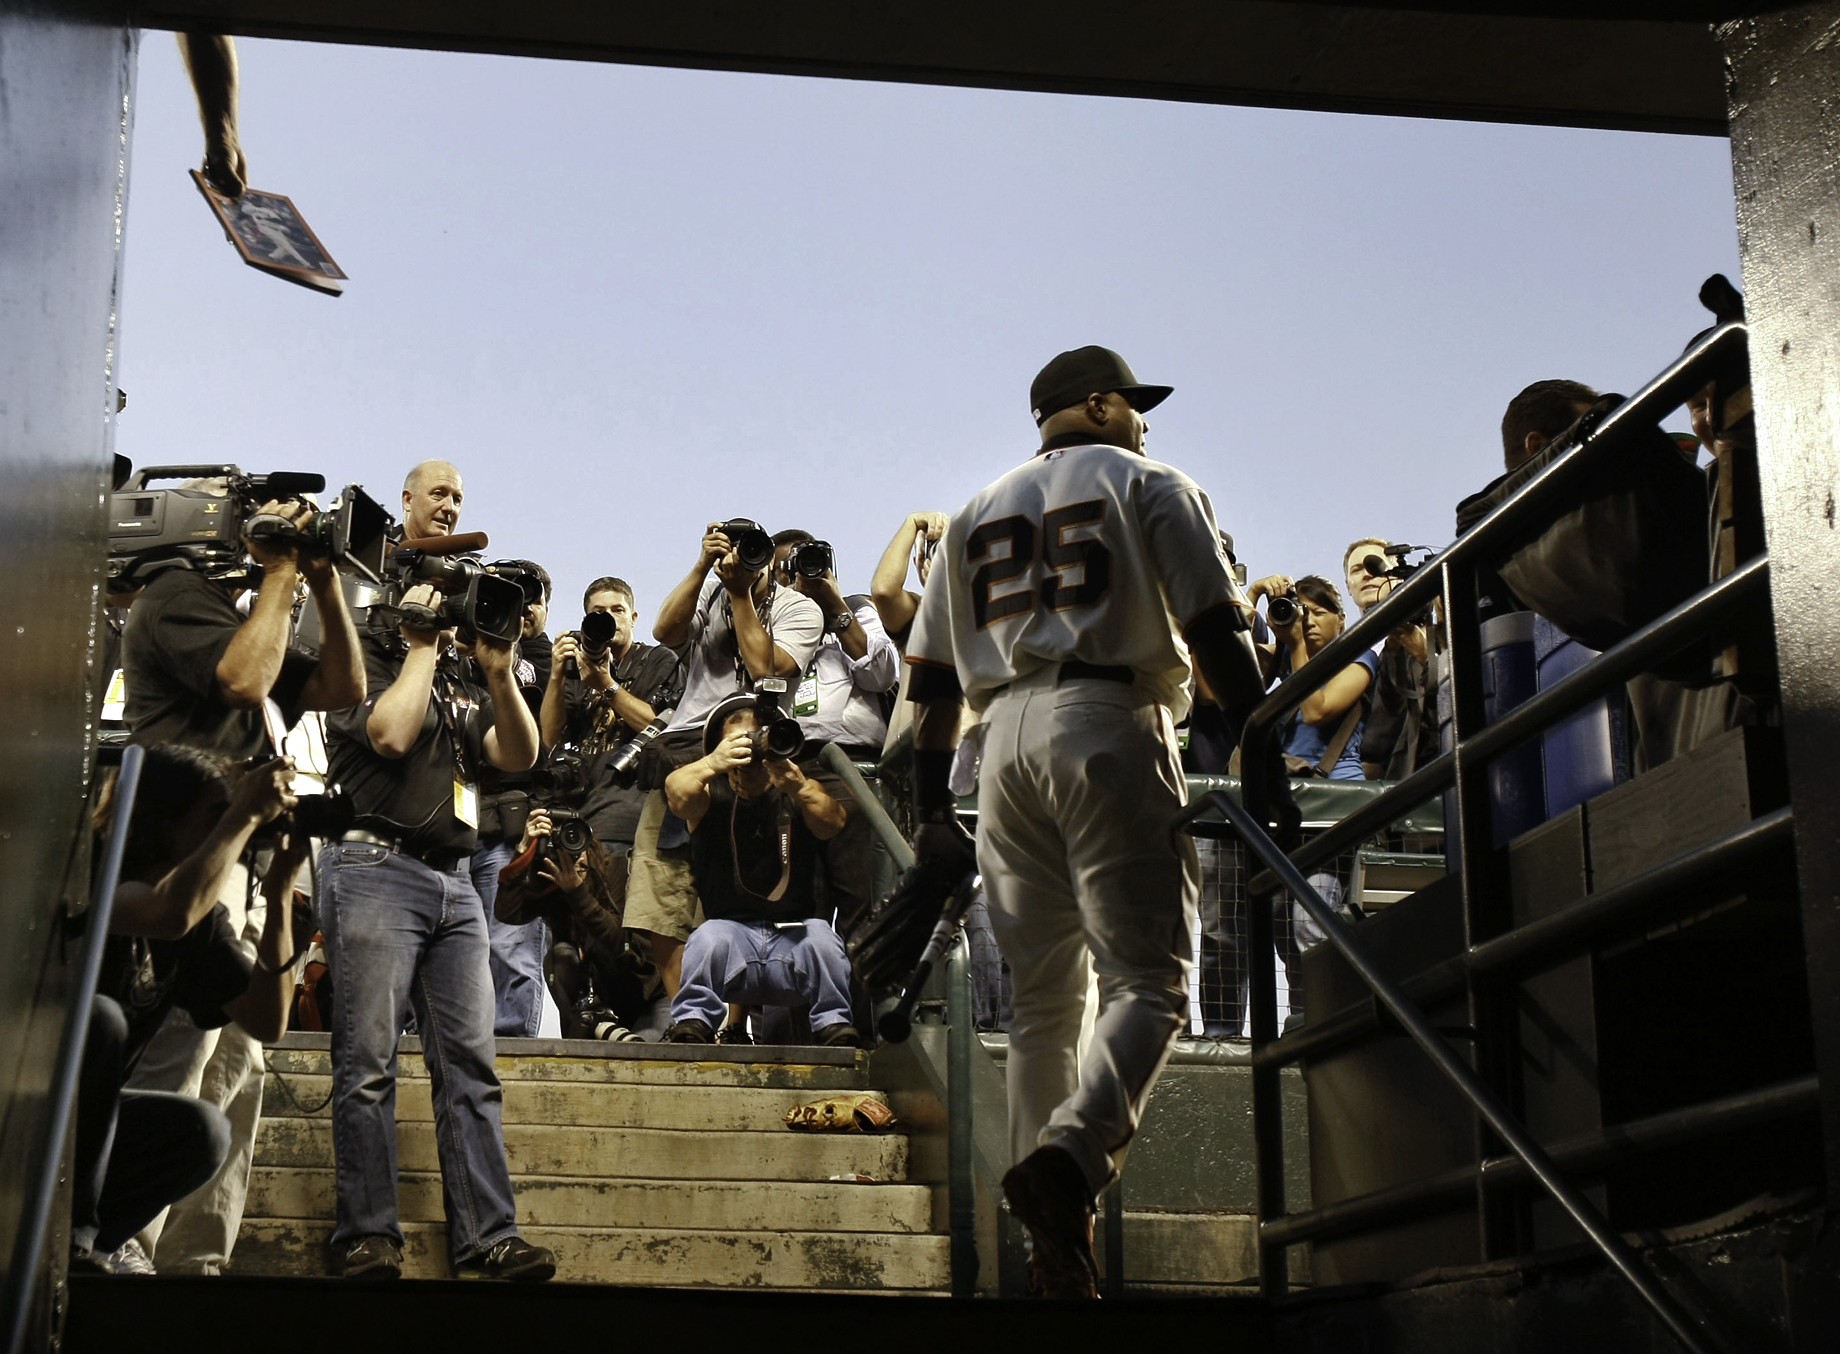 Barry Bonds approaches the dug out and passes a large crowd that has gathered during his last appearance as a major league baseball player.